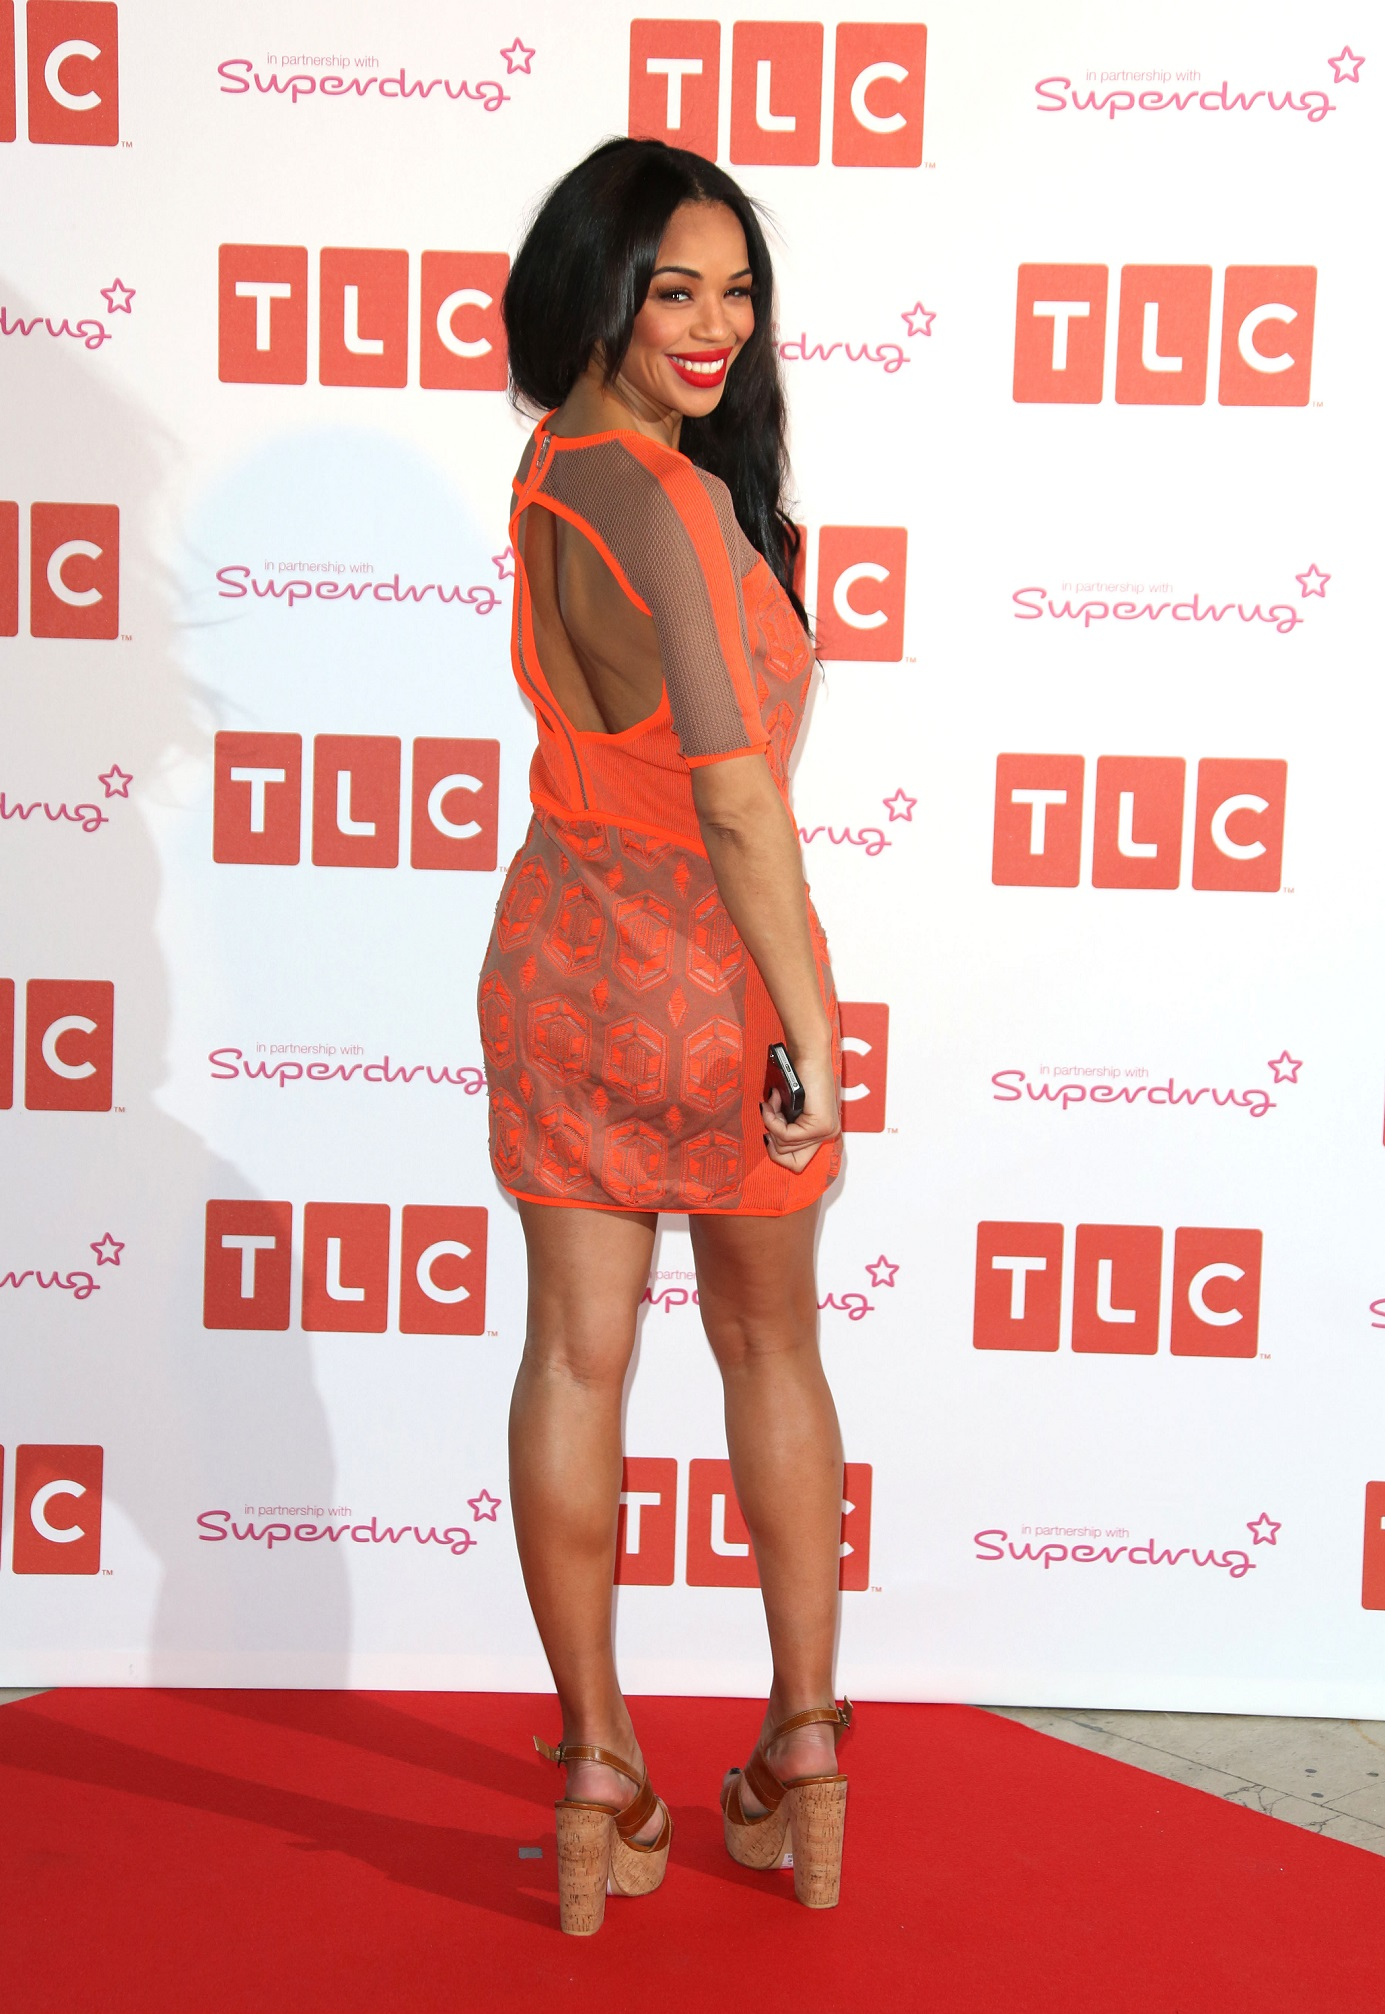 TLC channel launch held at Sketch Featuring: Sarah-Jane Crawford Where: London, United Kingdom When: 25 Apr 2013 Credit: Lia Toby/WENN.com